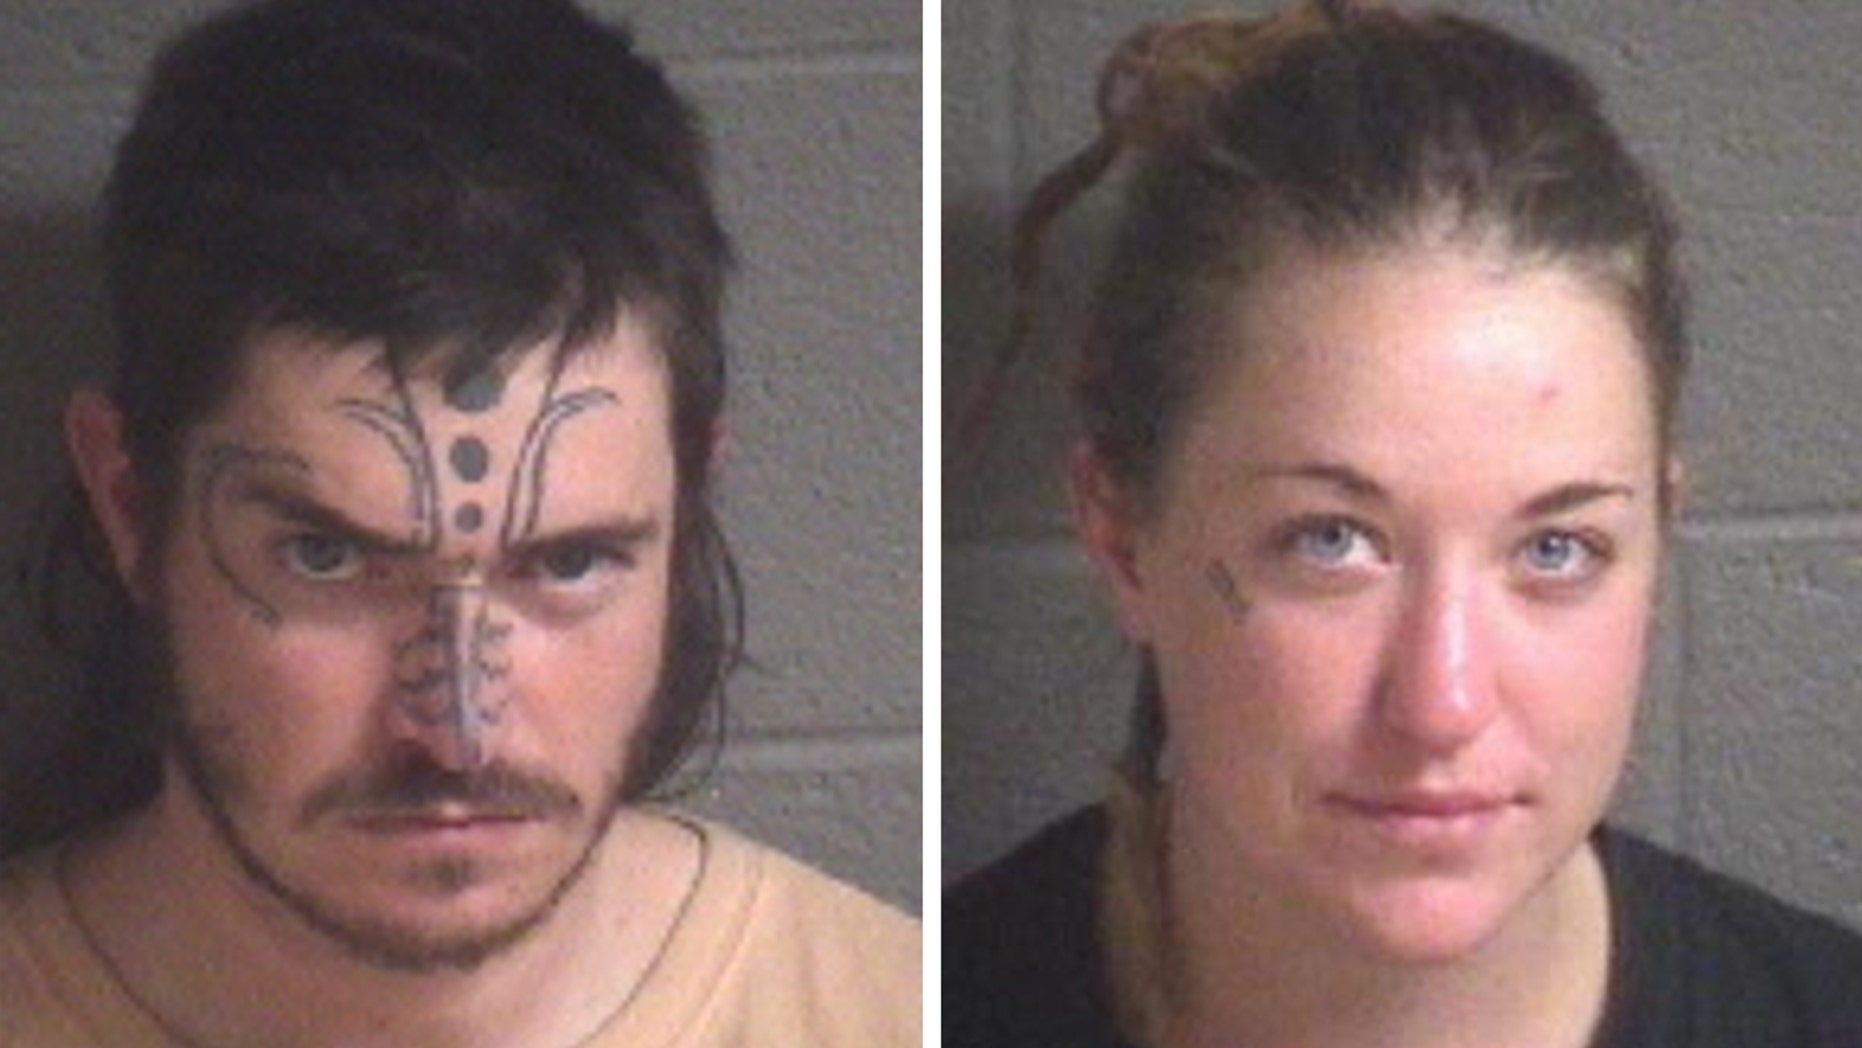 """Jace Greene, left, and Shariah Metzger, right, were charged with the """"improper burial of an animal"""" in Asheville, North Carolina."""